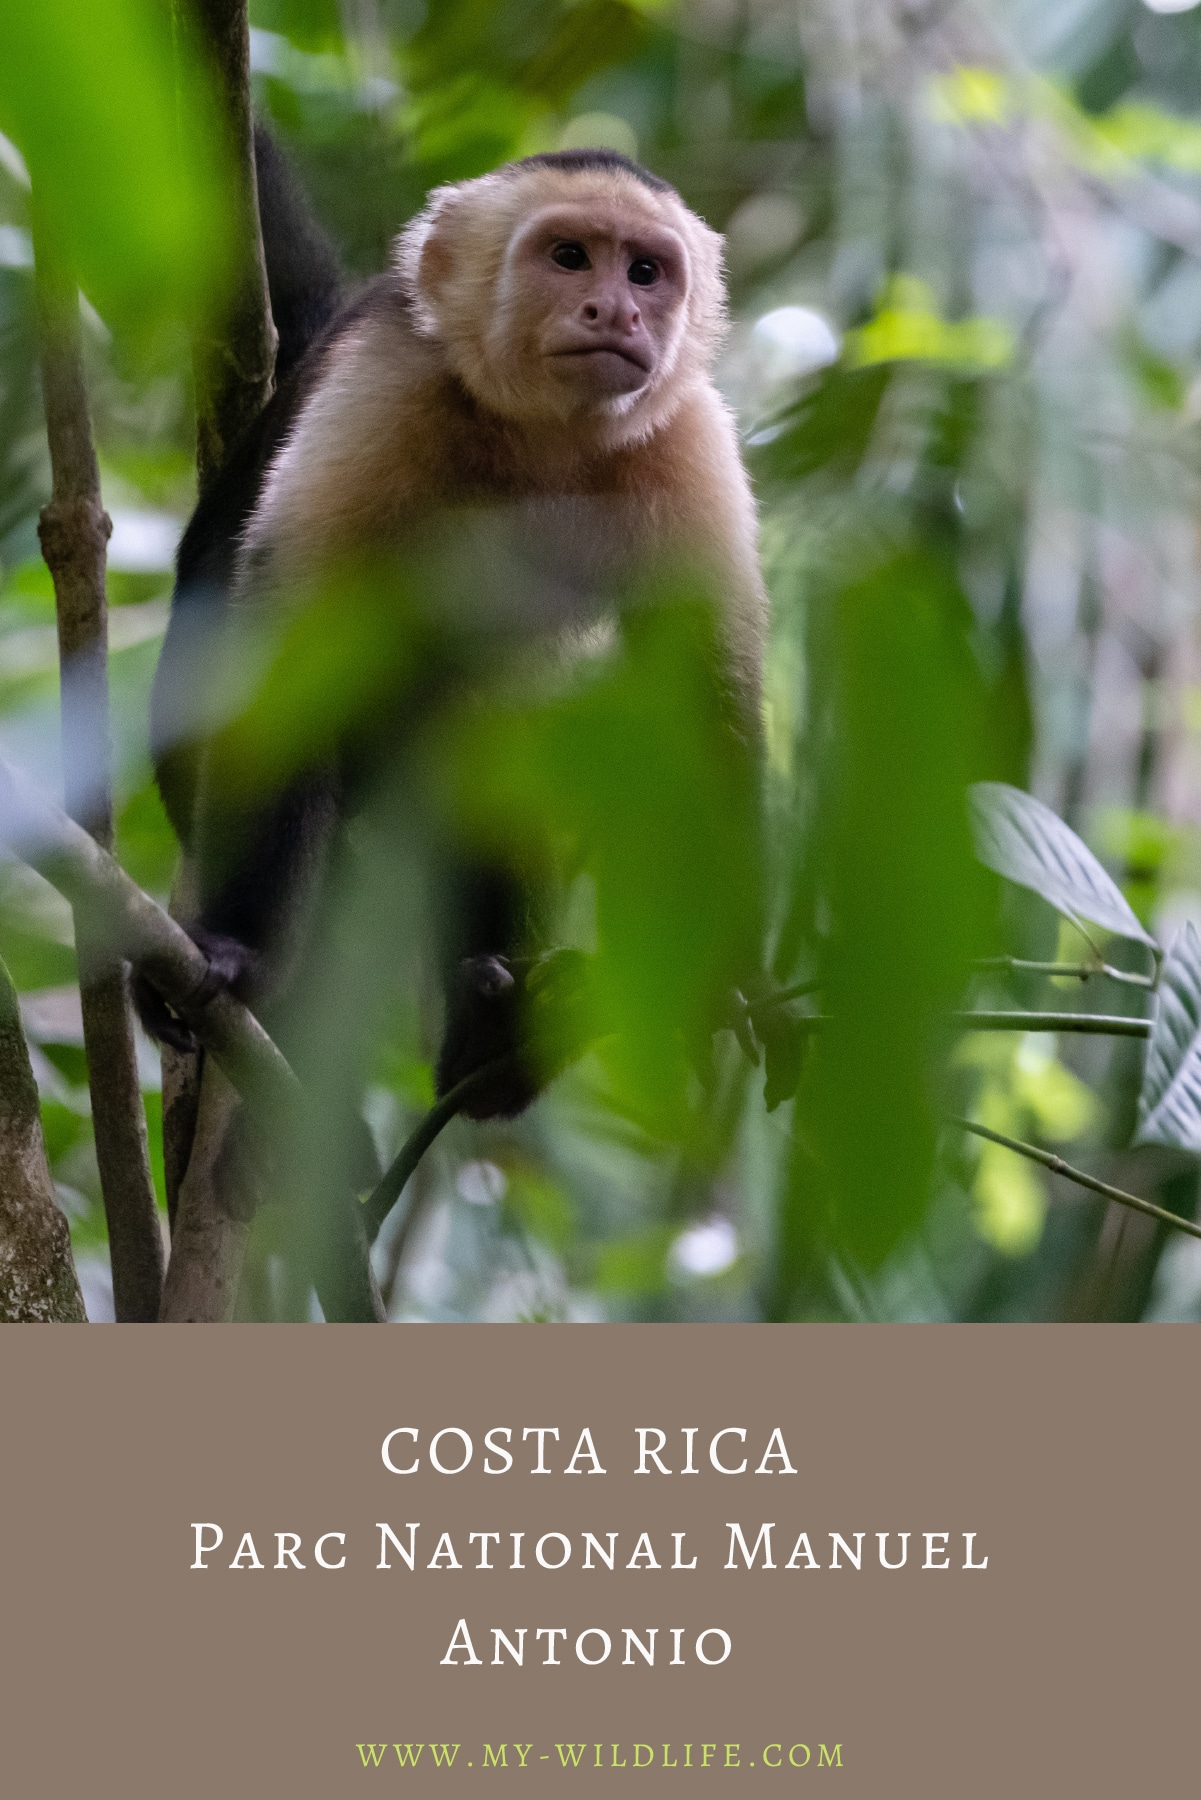 COSTA-RICA-Parc-National-Manuel-Antonio-02